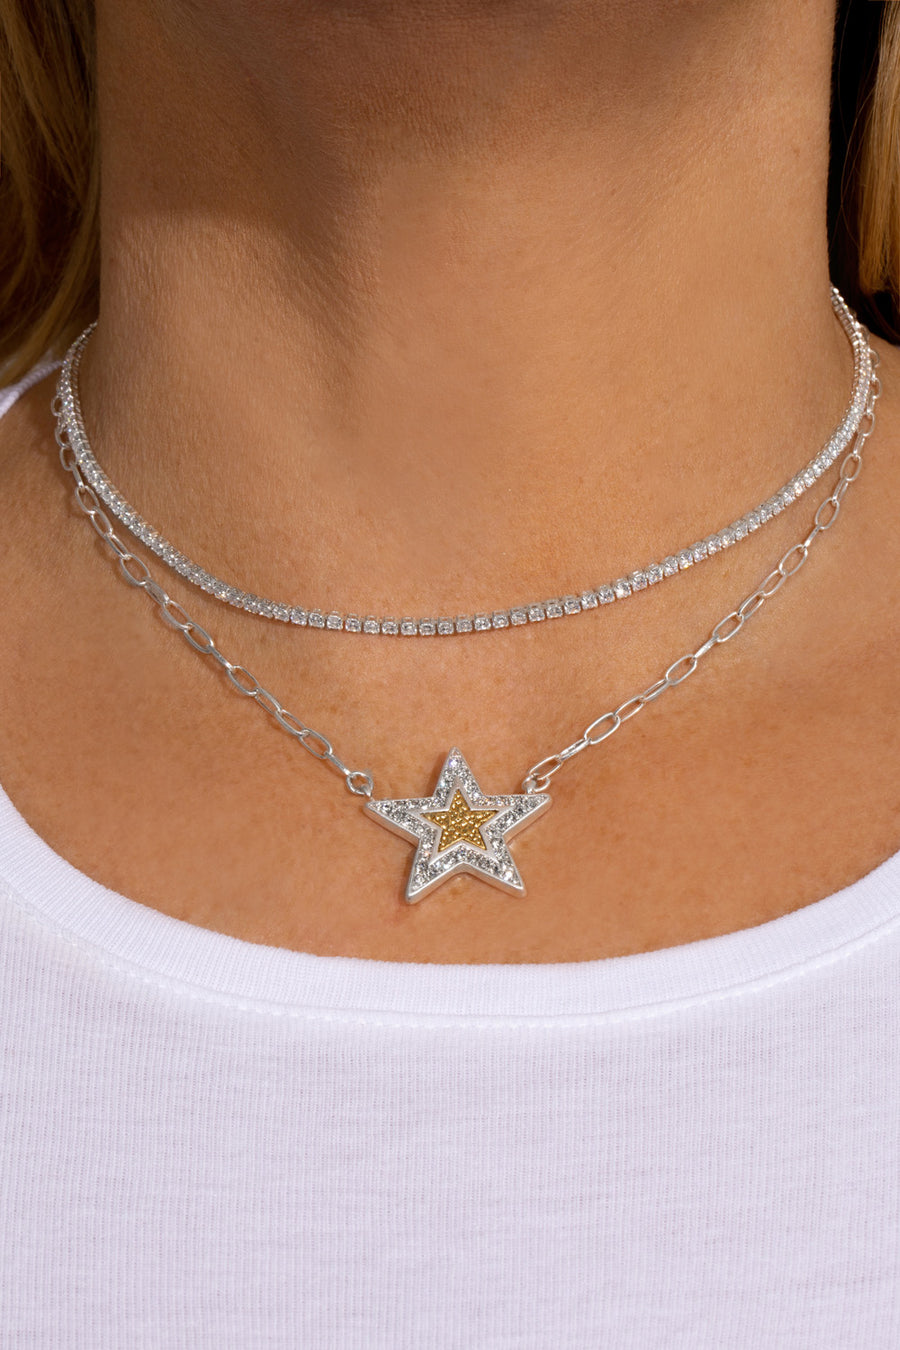 Kate Thornton 'Shining Star' Layered Silver and Gold Necklace